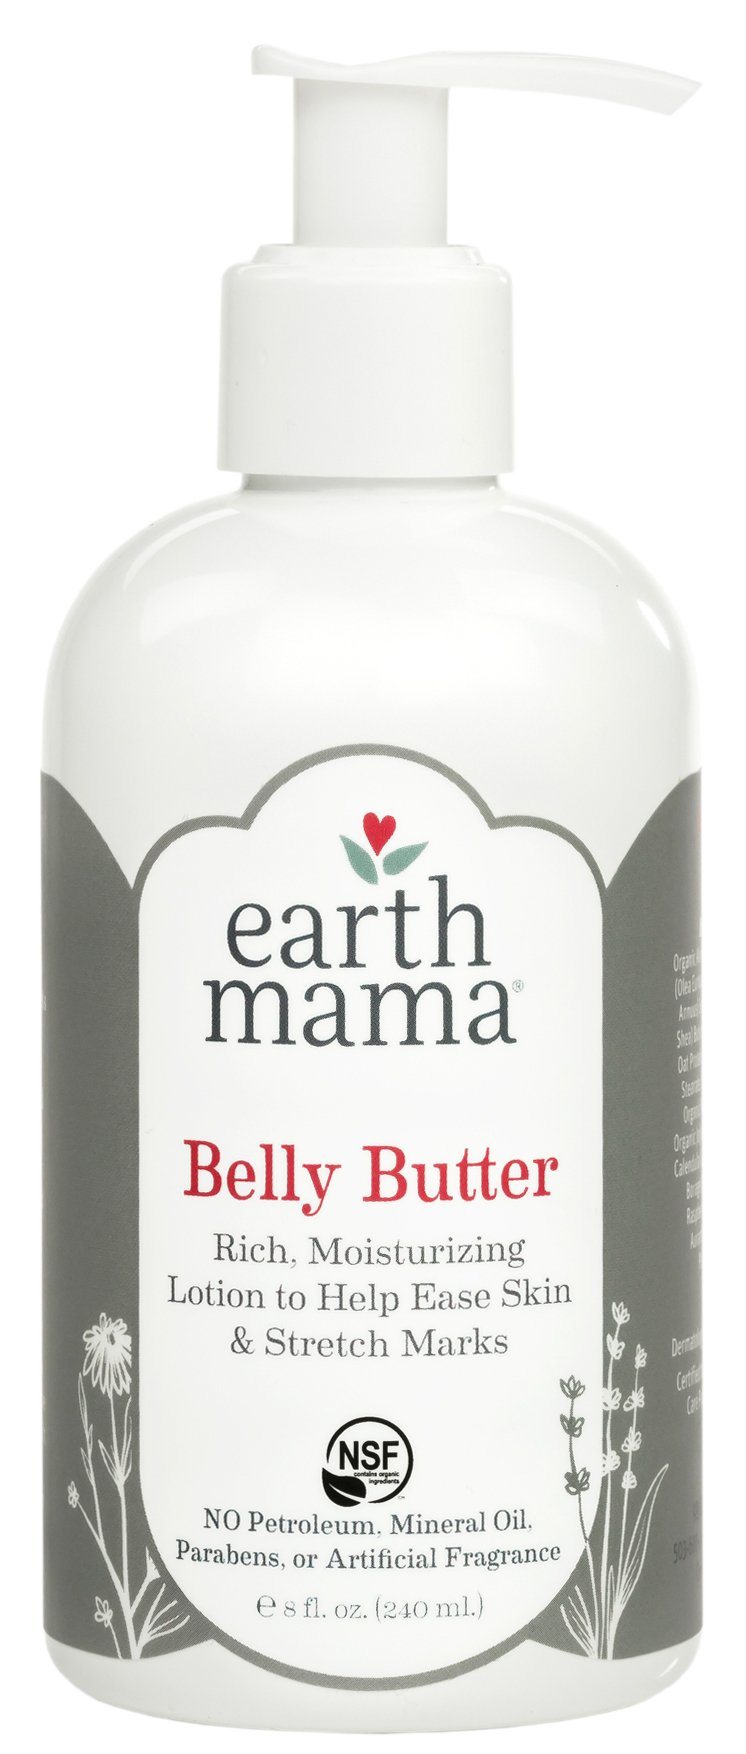 Earth Mama Belly Butter to Help Ease Skin and Stretch Marks, 8-Fluid Ounce by Earth Mama